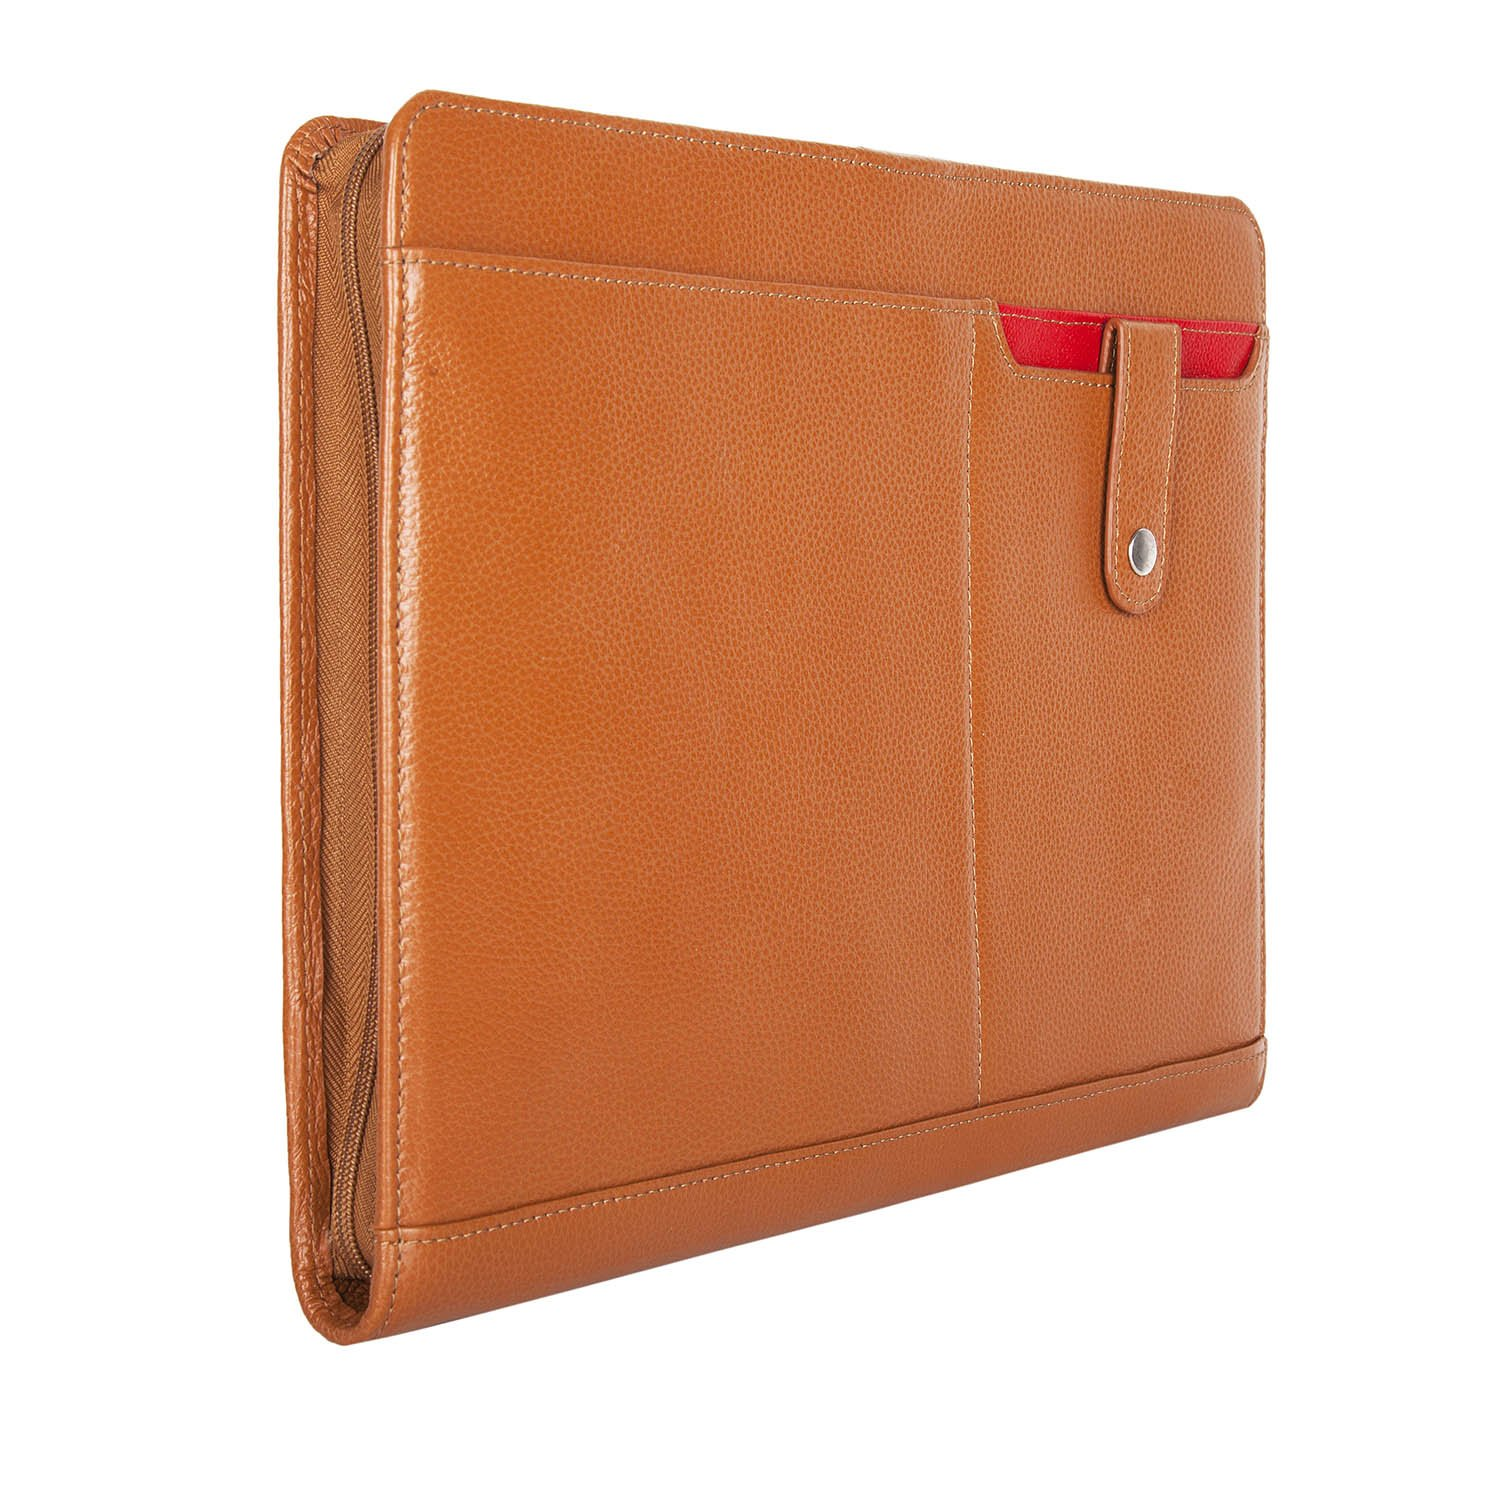 Cow Leather Portfolio Cowhide Handmade Padfolio Zippered Briefcase Genuine Full Litchi Grain Leather Organizer Pad Business Card Holder Case A4 Note Folder for Custom Made (Brown)